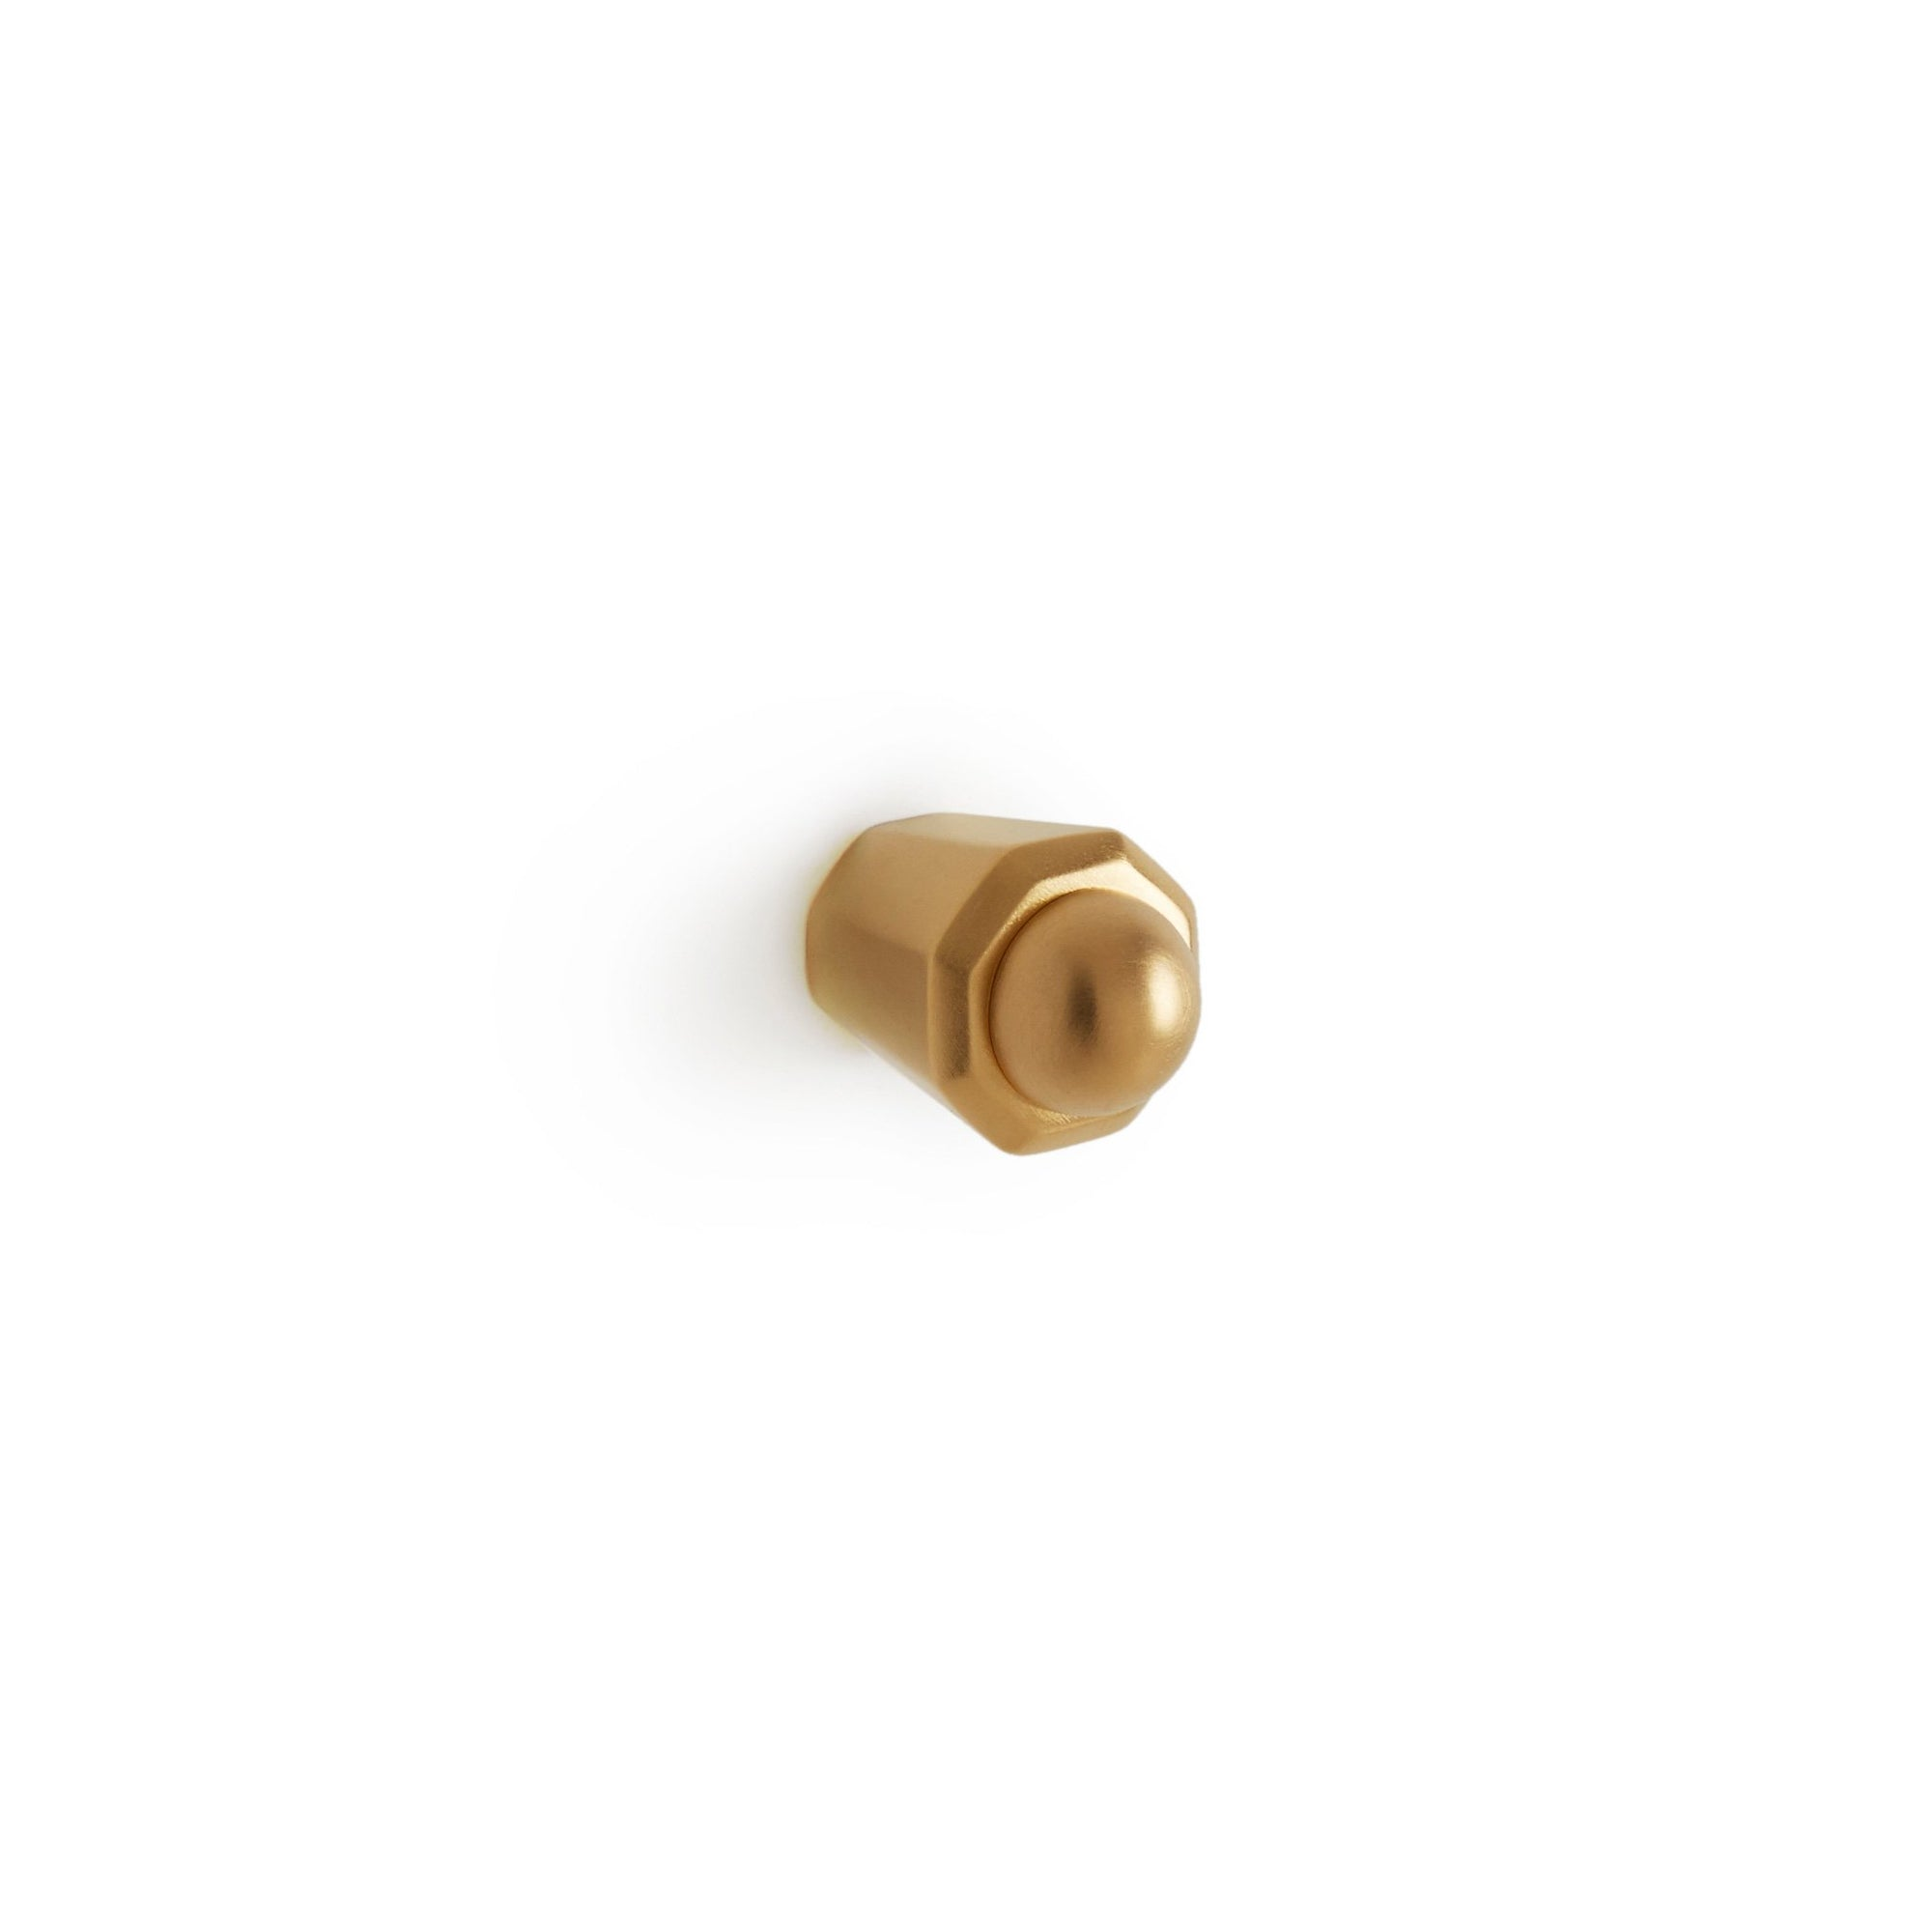 0019-3/4-GP Sherle Wagner International Harrison I Cabinet & Drawer Knob in Gold Plate metal finish